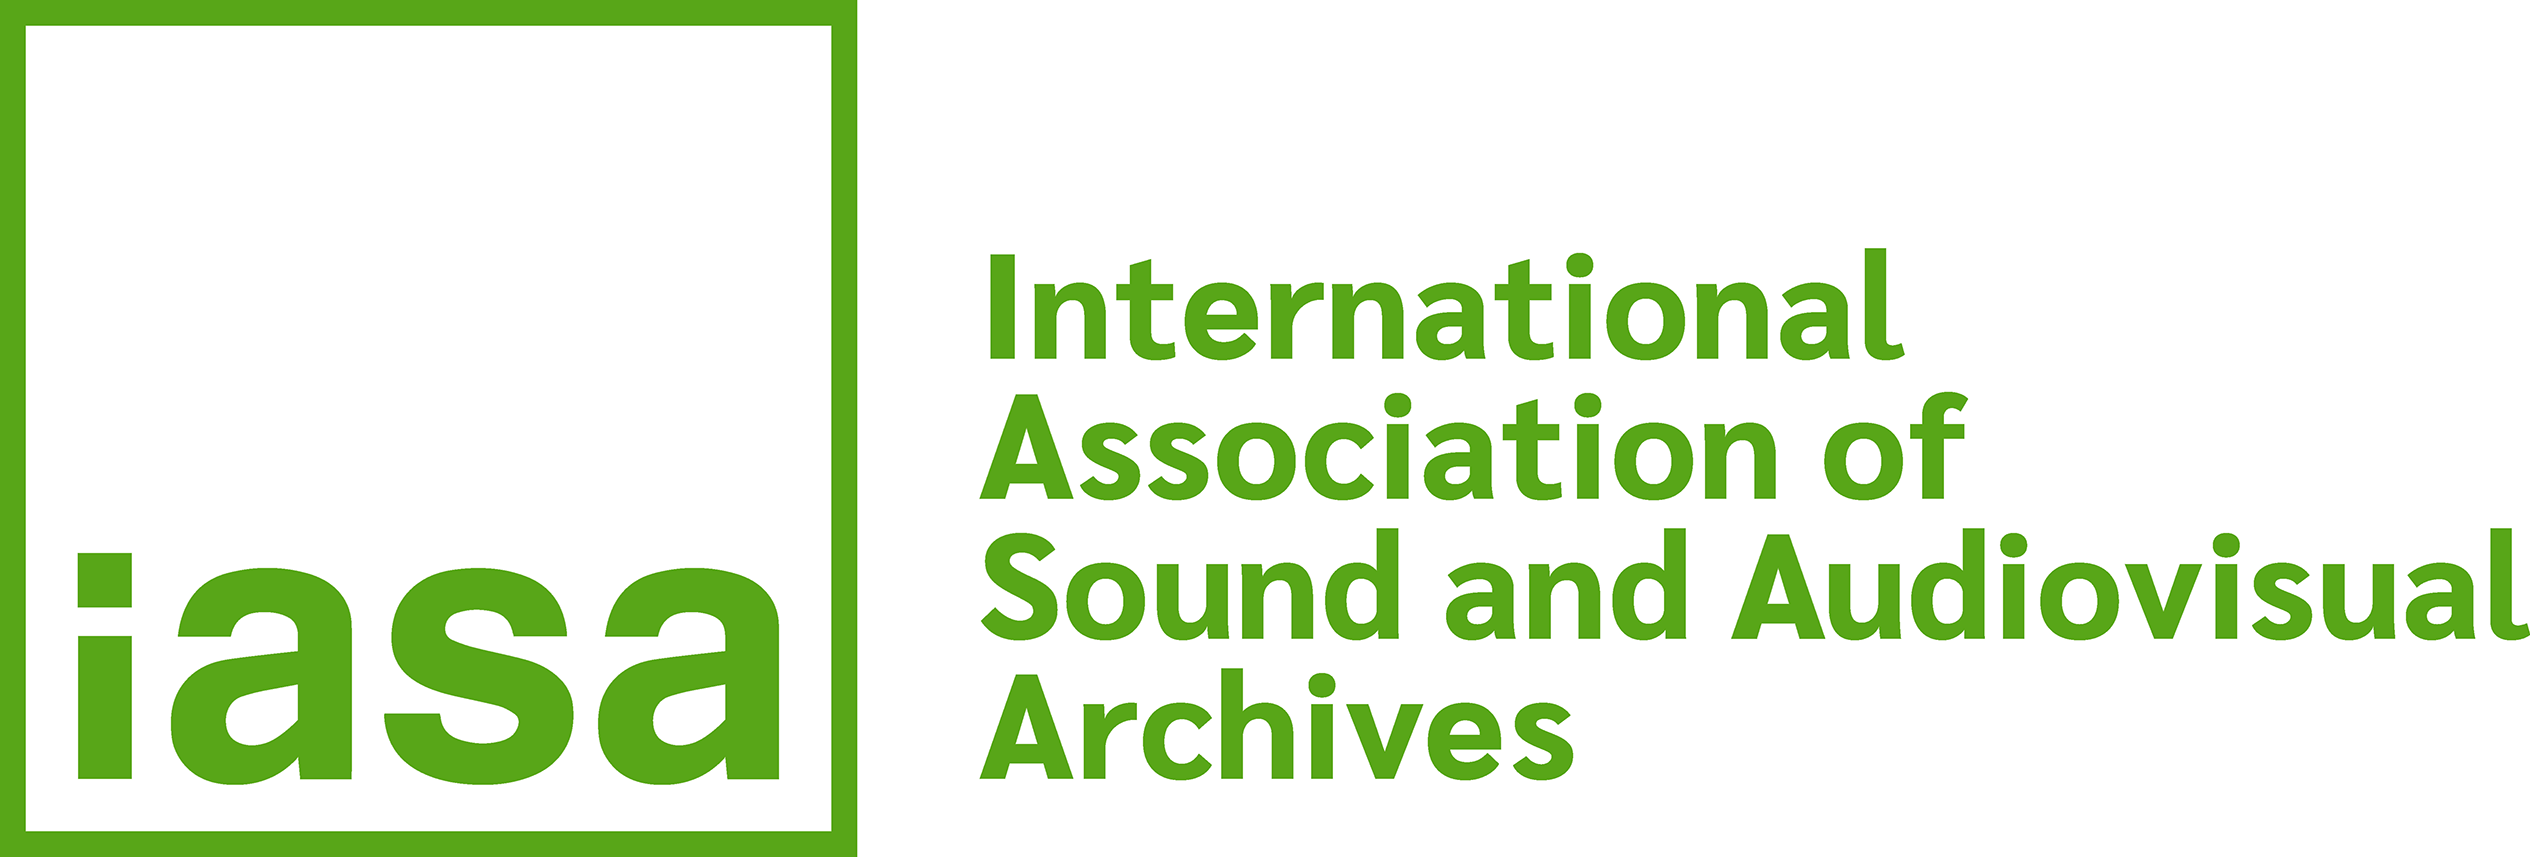 International Association of Sound and Audiovisual Archives